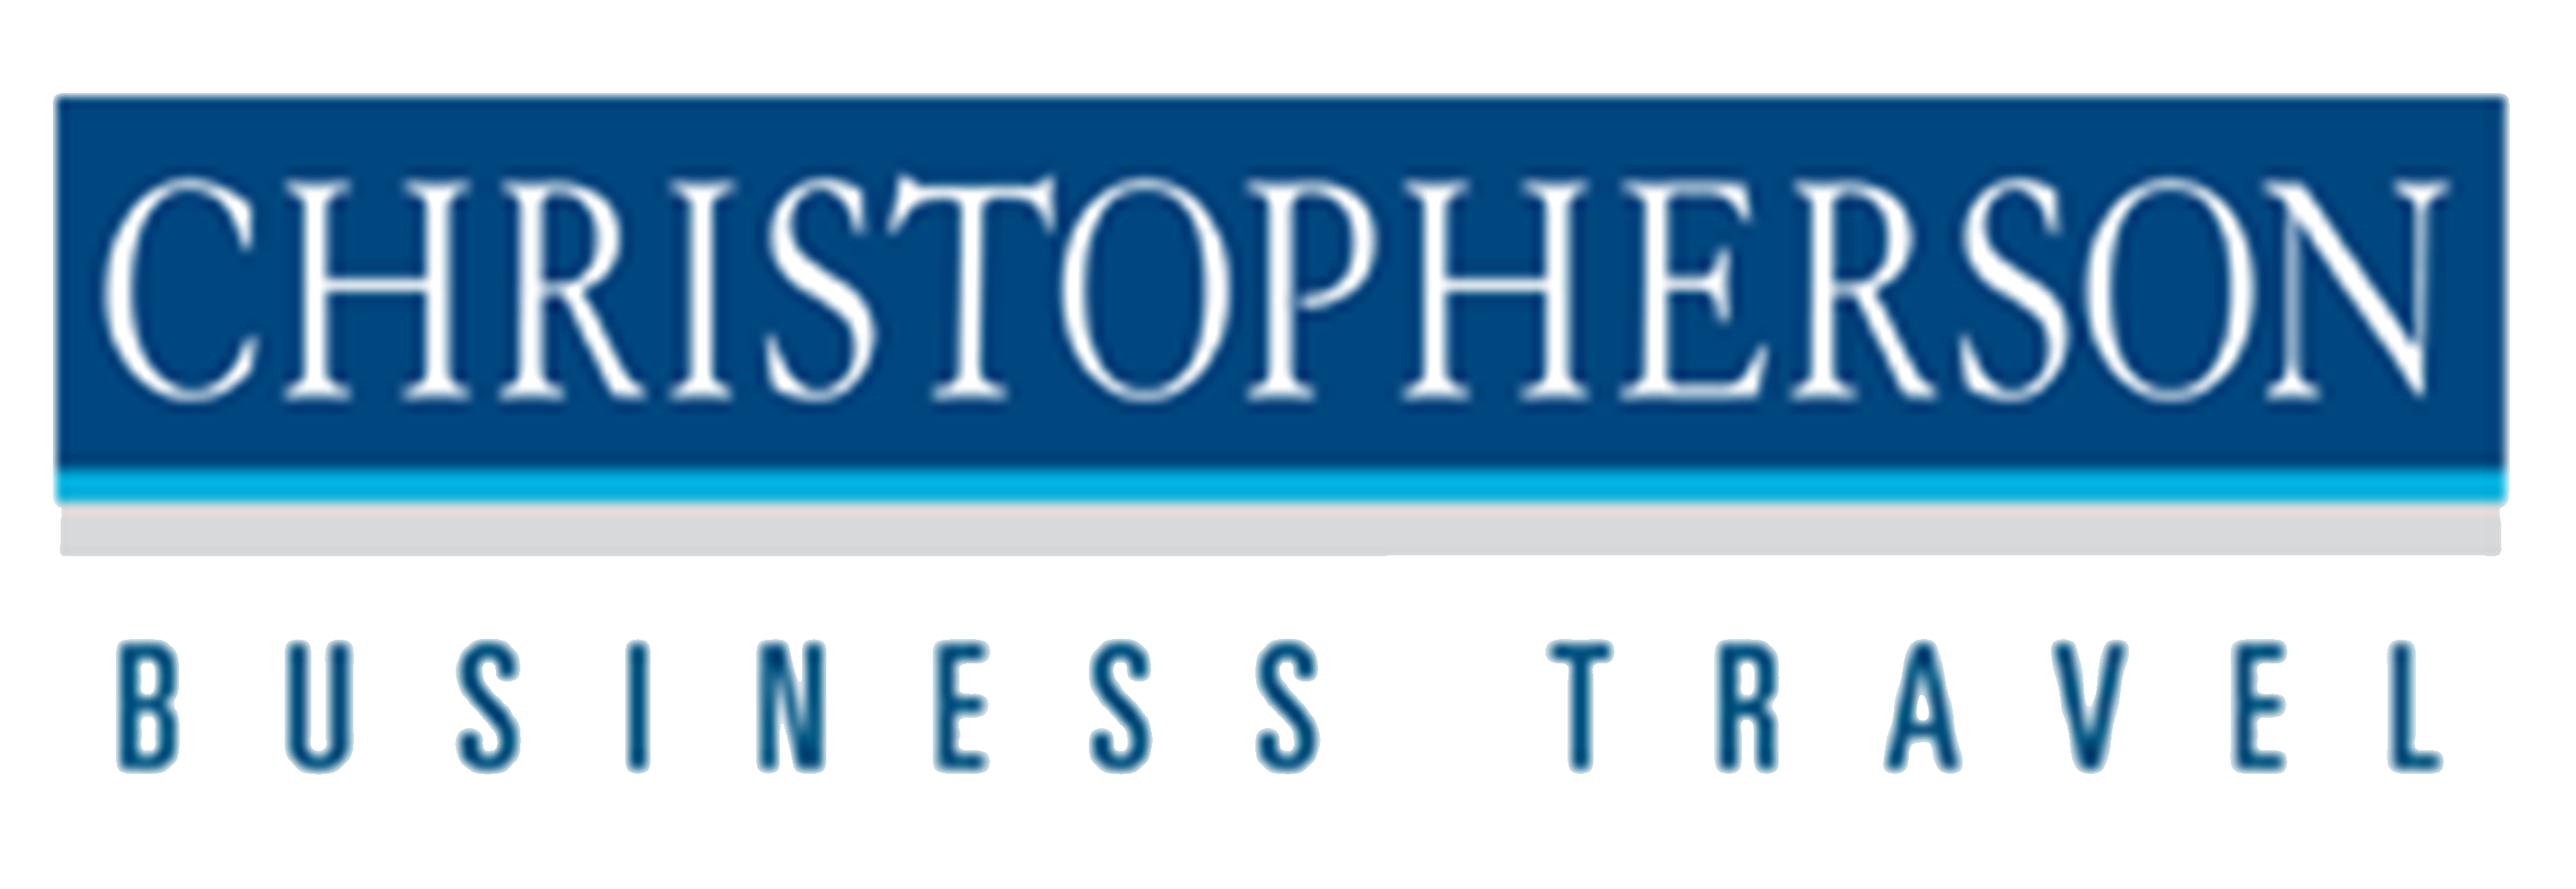 Christopherson_Business_Travel.png